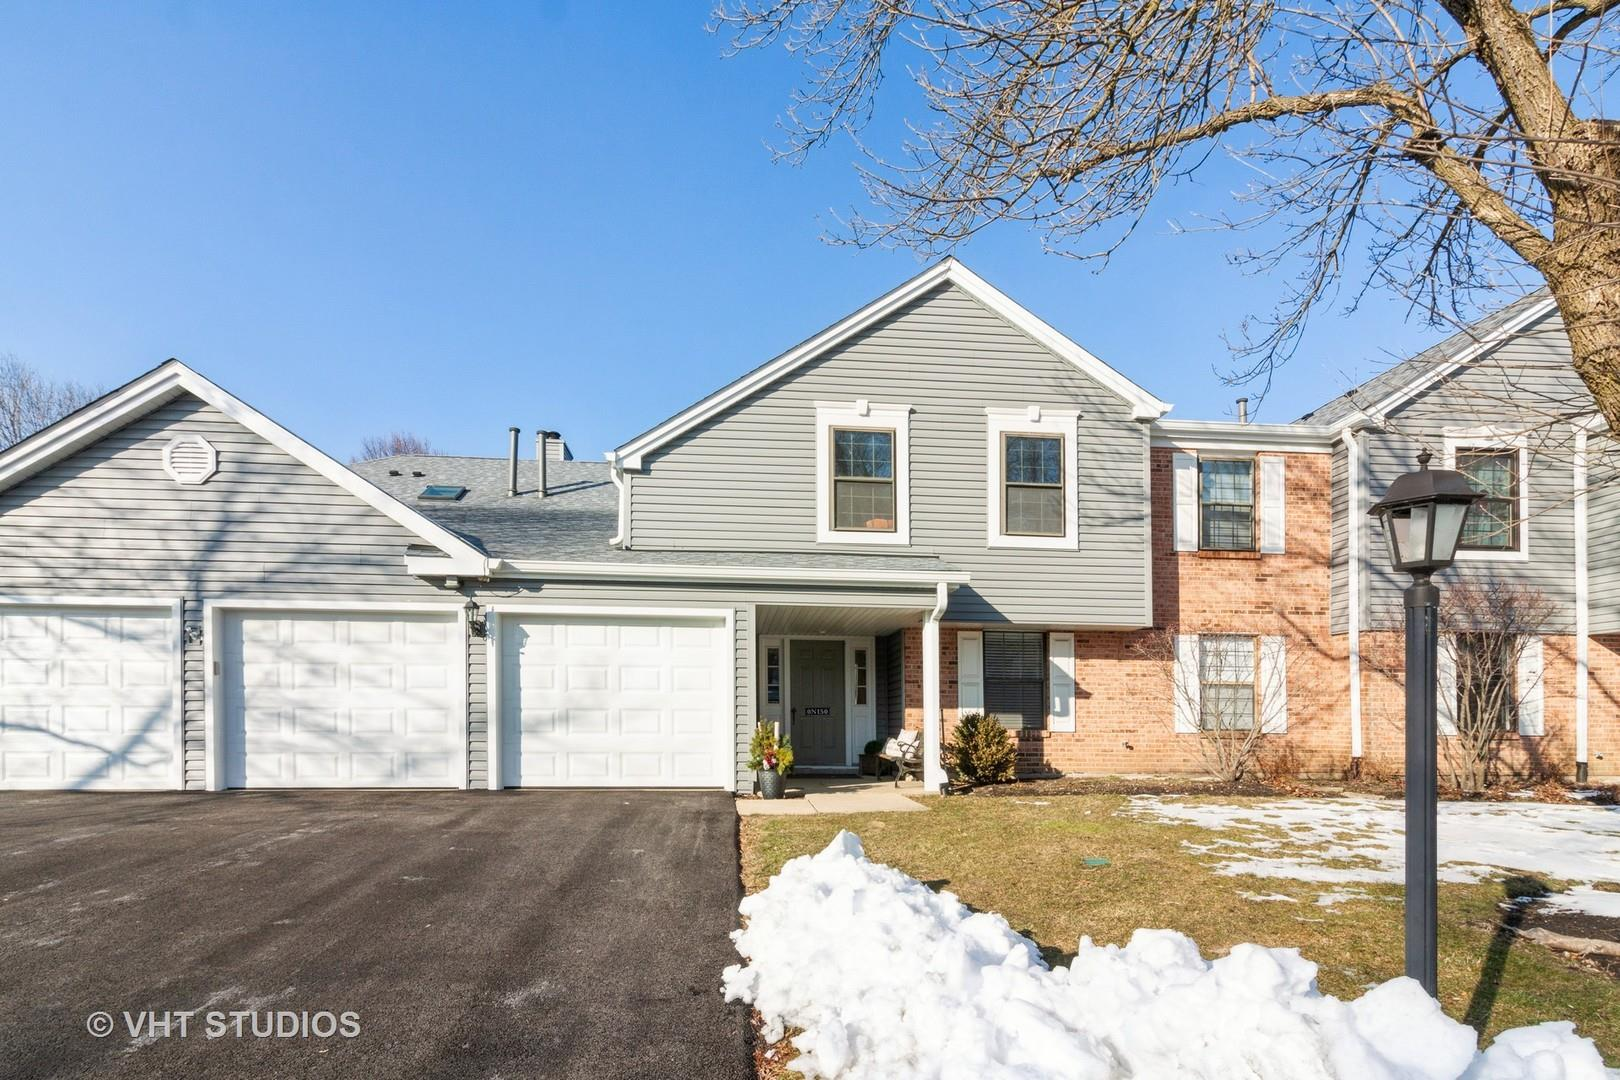 0N150 Windermere Road #1306, Winfield, IL 60190 - #: 10970584